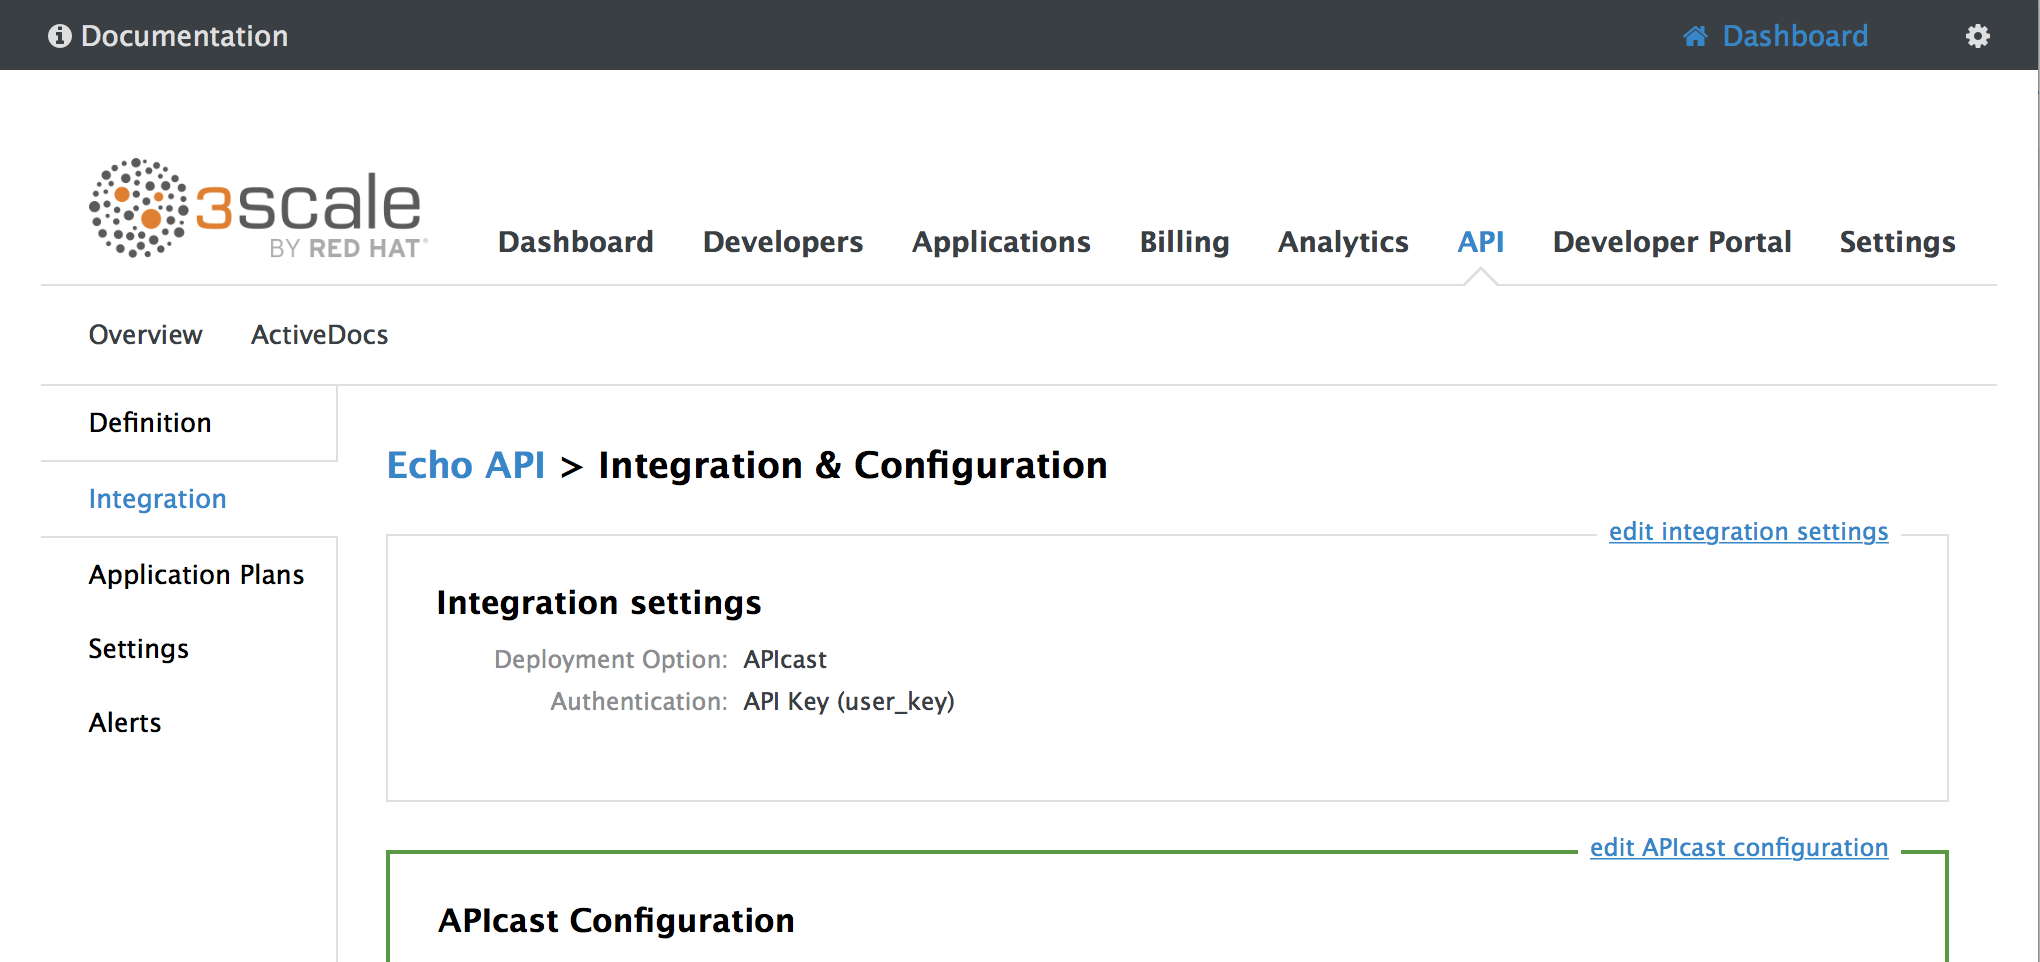 navigate to APIcast configuration page